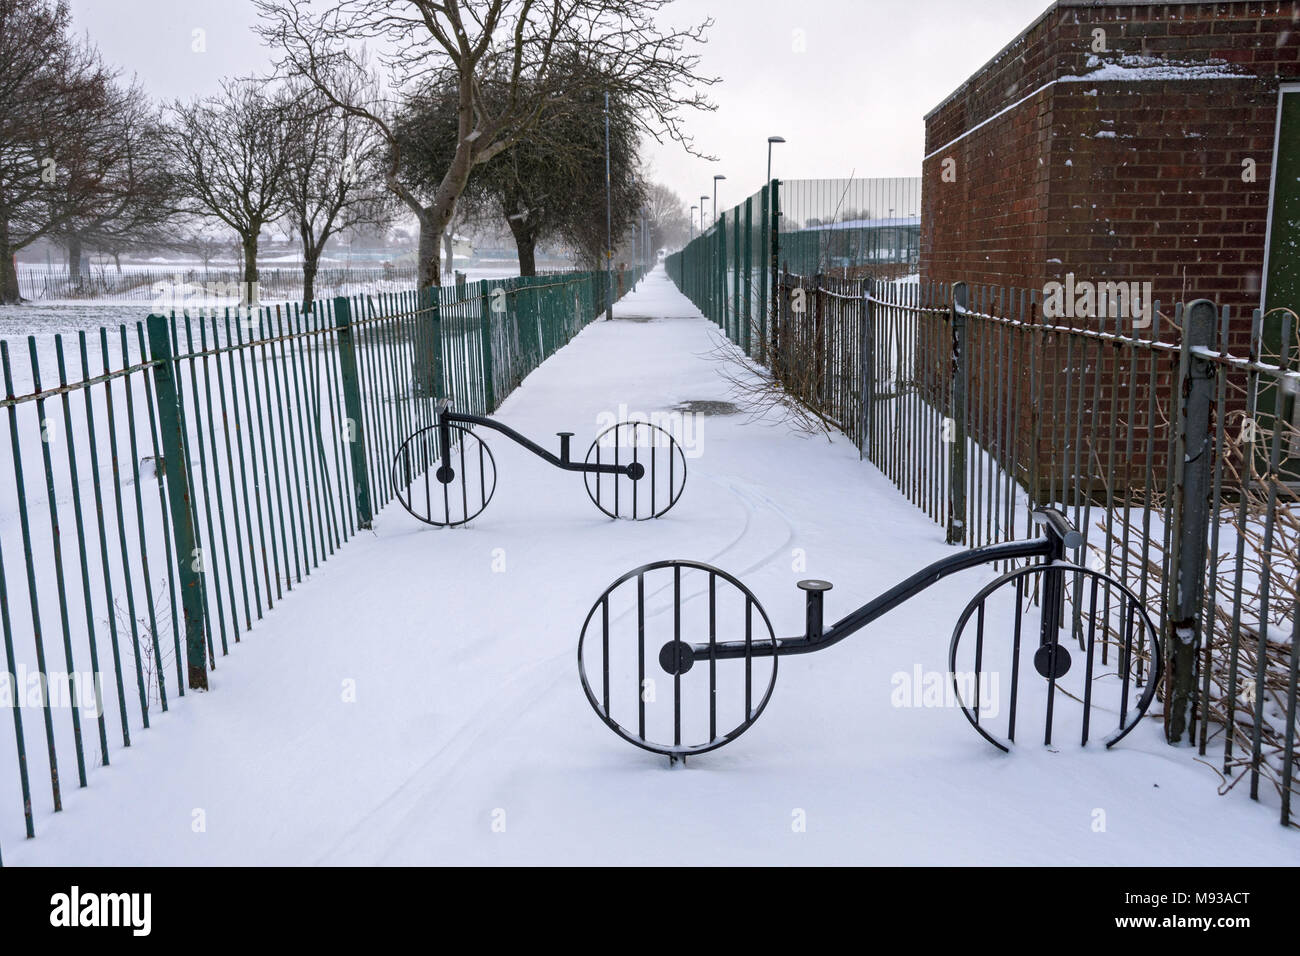 Bicycle styled vehicle barriers on a snow covered footpath, next to Sunnybank Park, Droylsden, Tameside, Manchester, England, UK - Stock Image